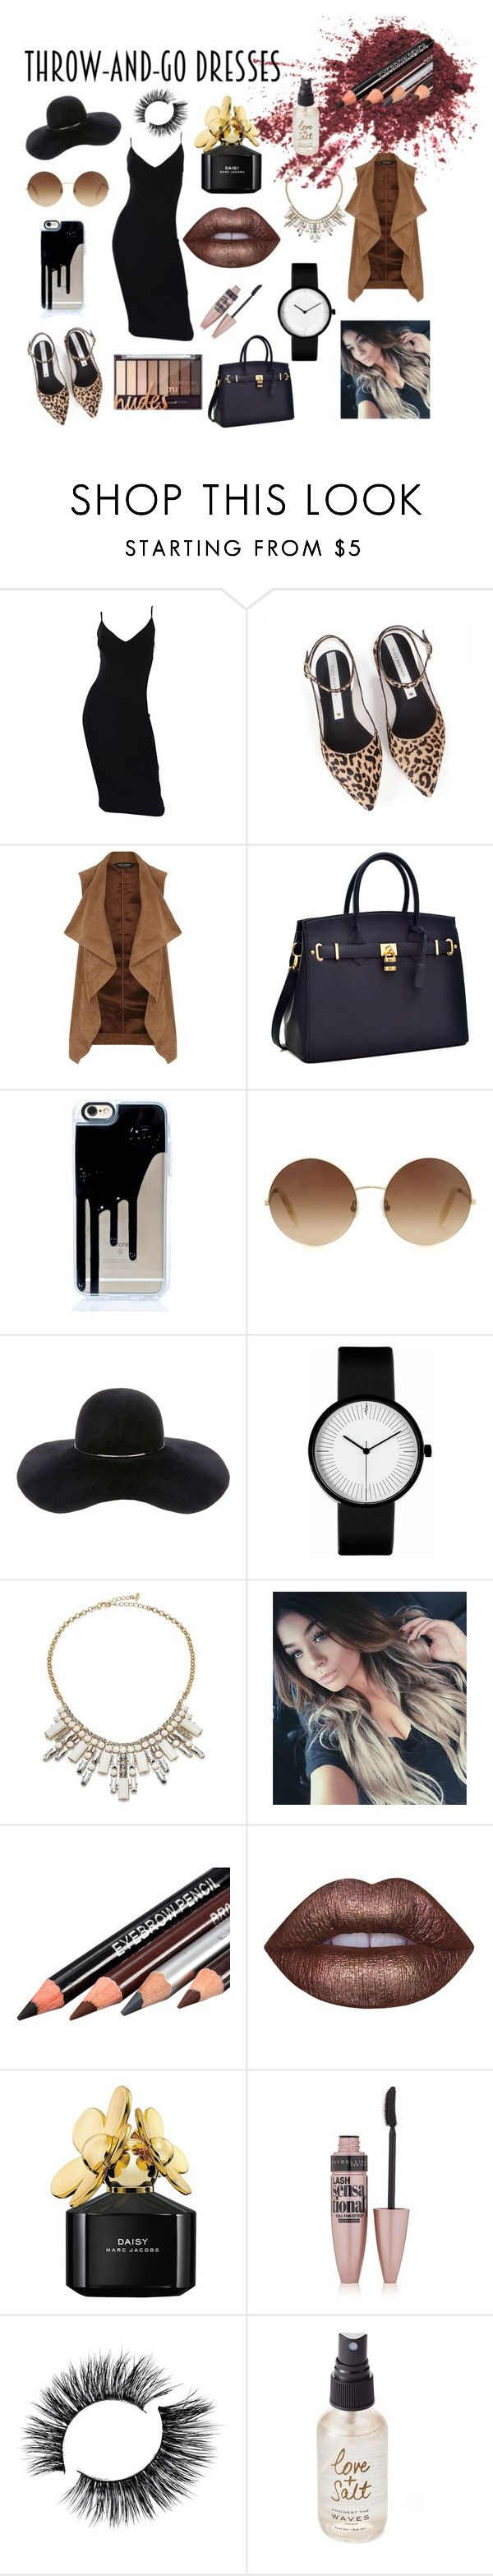 """""""rocker chic"""" by immy-medley ❤ liked on Polyvore featuring Michael Kors, Zolà, Dorothy Perkins, Victoria Beckham, Eugenia Kim, ABS by Allen Schwartz, Lime Crime, Marc Jacobs, Maybelline and Olivine"""